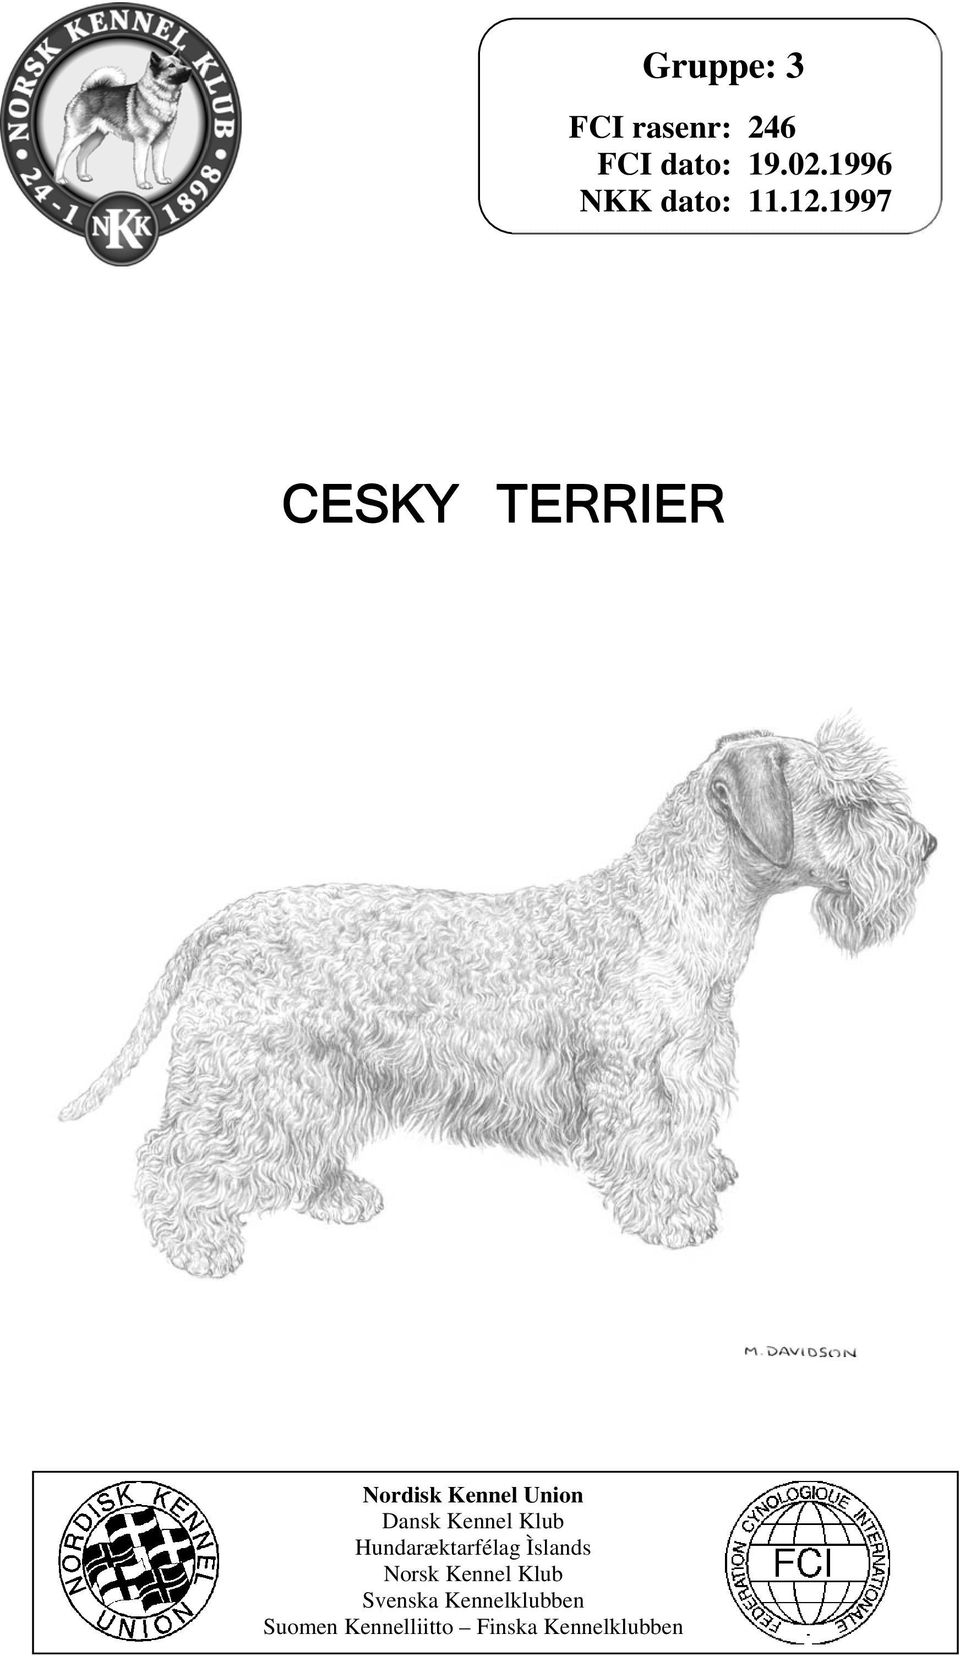 1997 CESKY TERRIER Nordisk Kennel Union Dansk Kennel